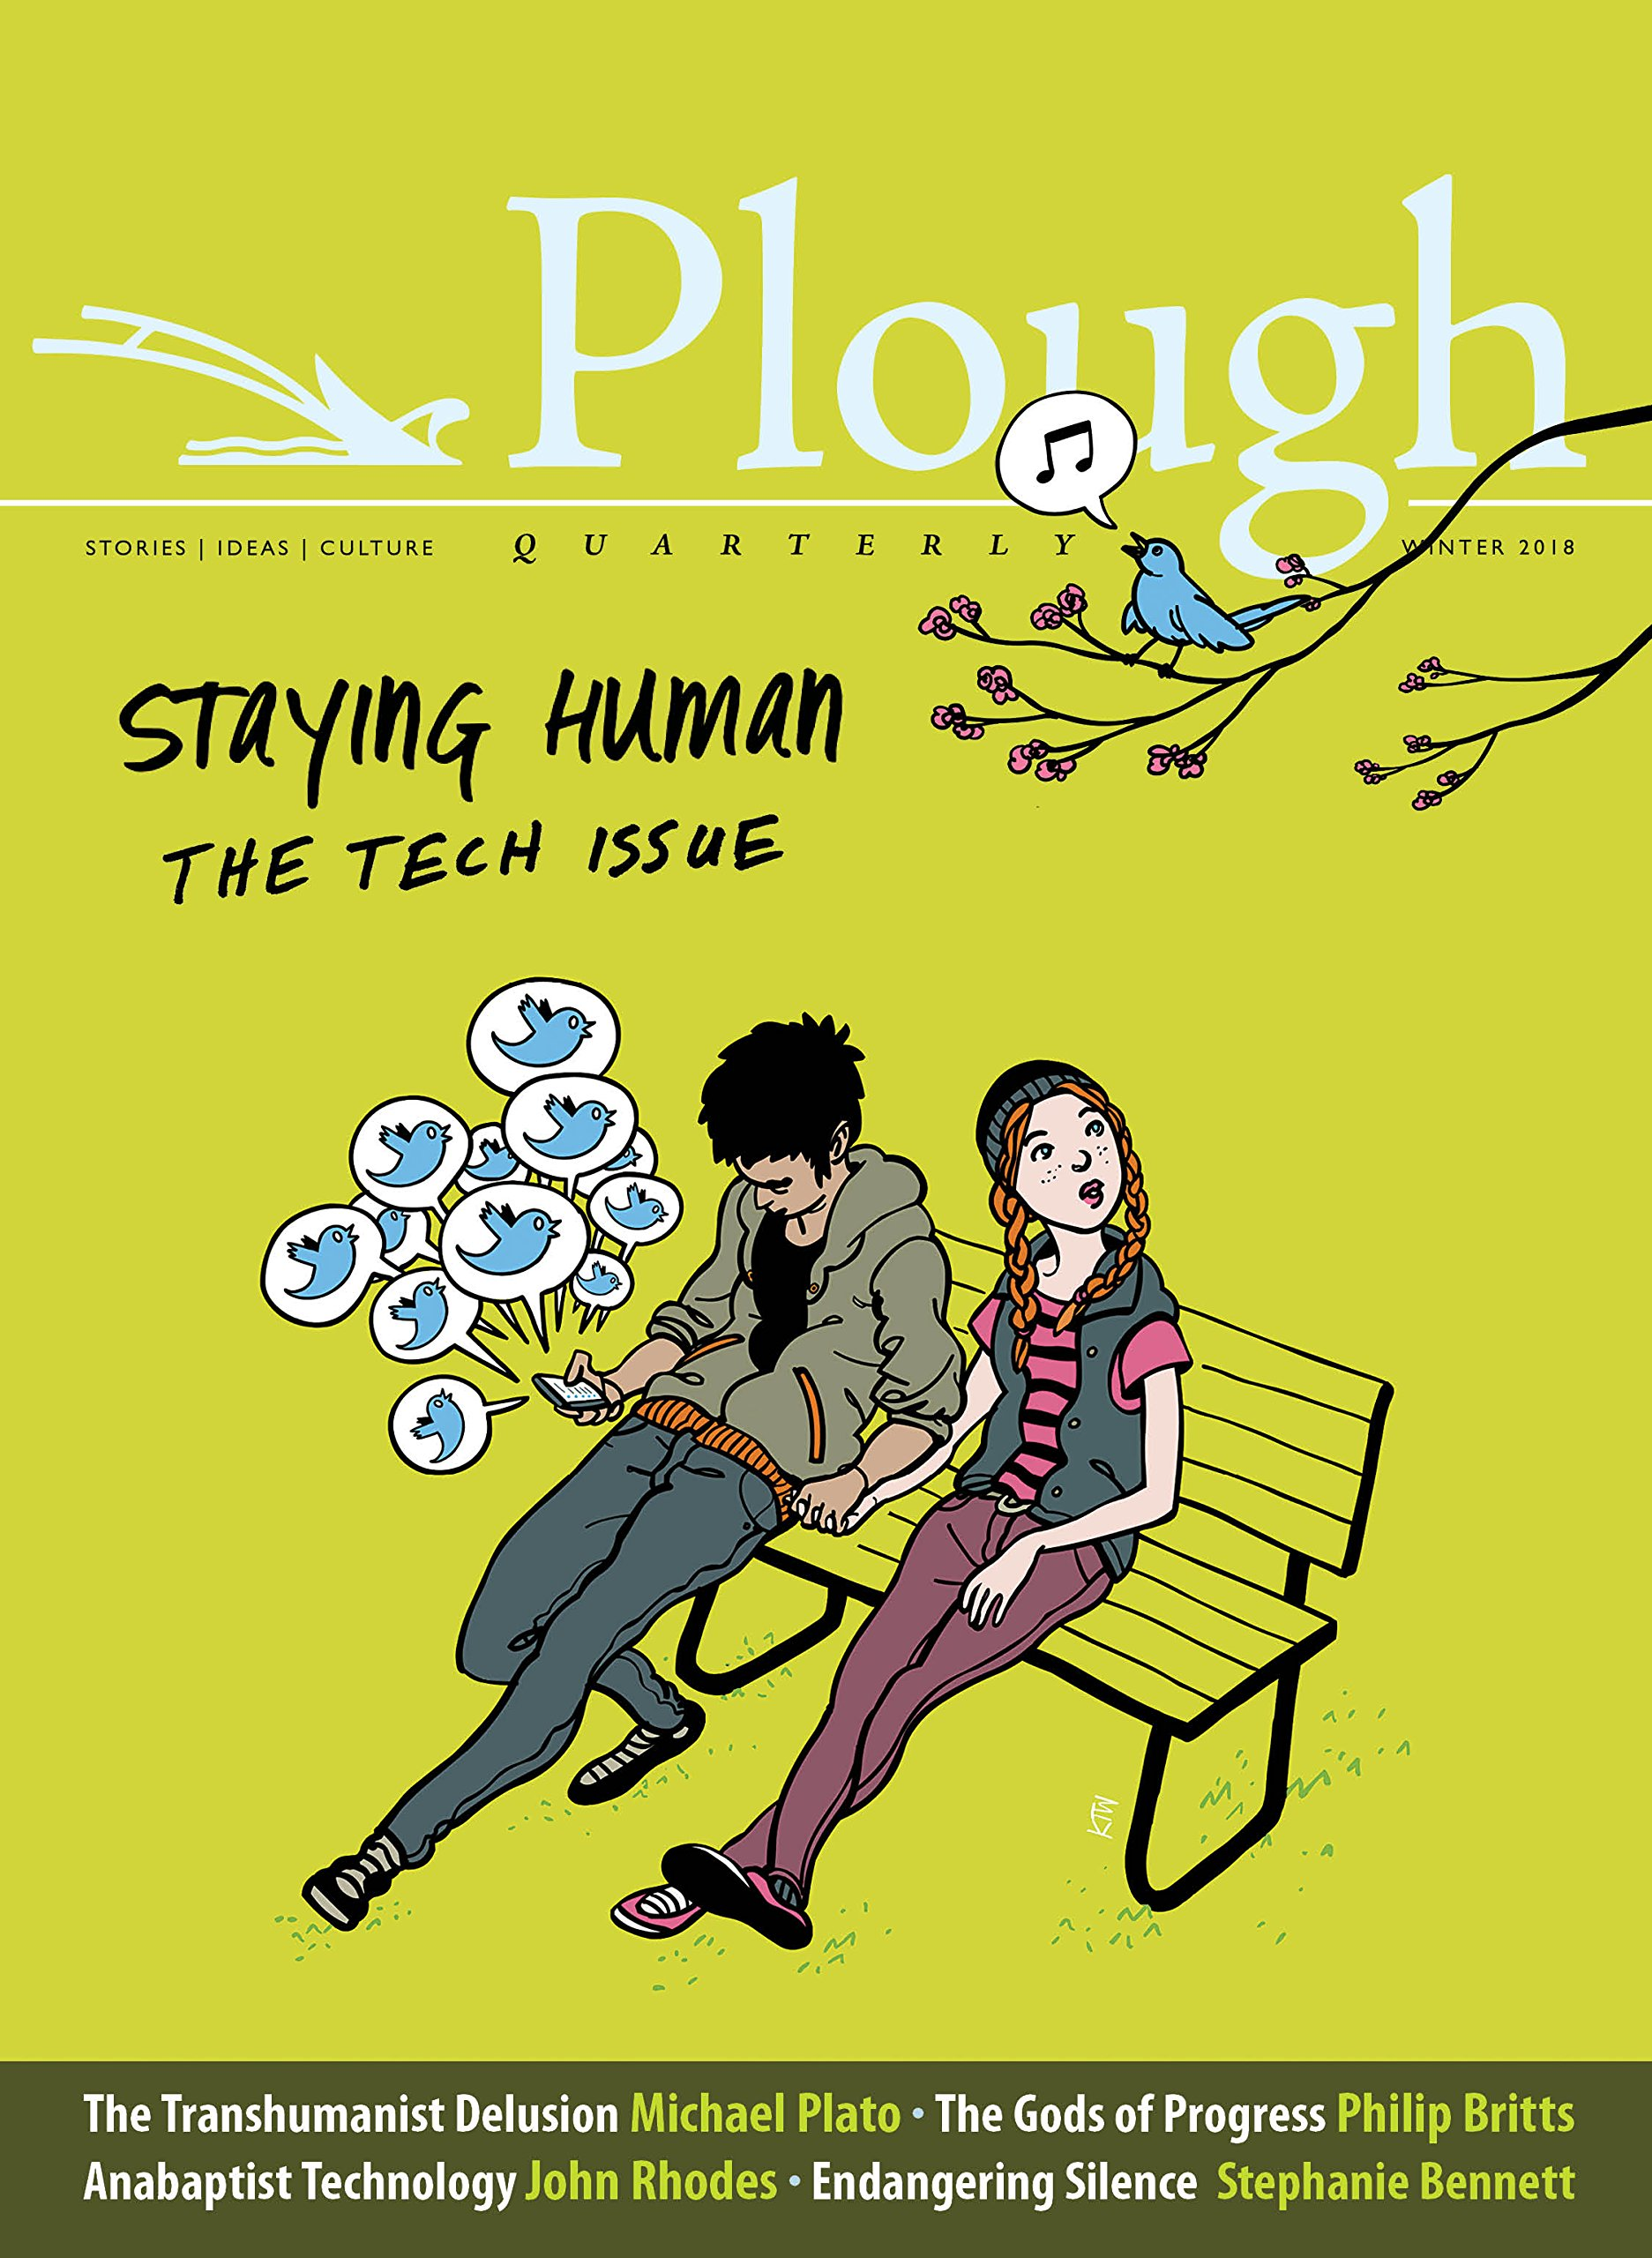 Plough Quarterly No. 15 - Staying Human: Tech Issue Text fb2 book